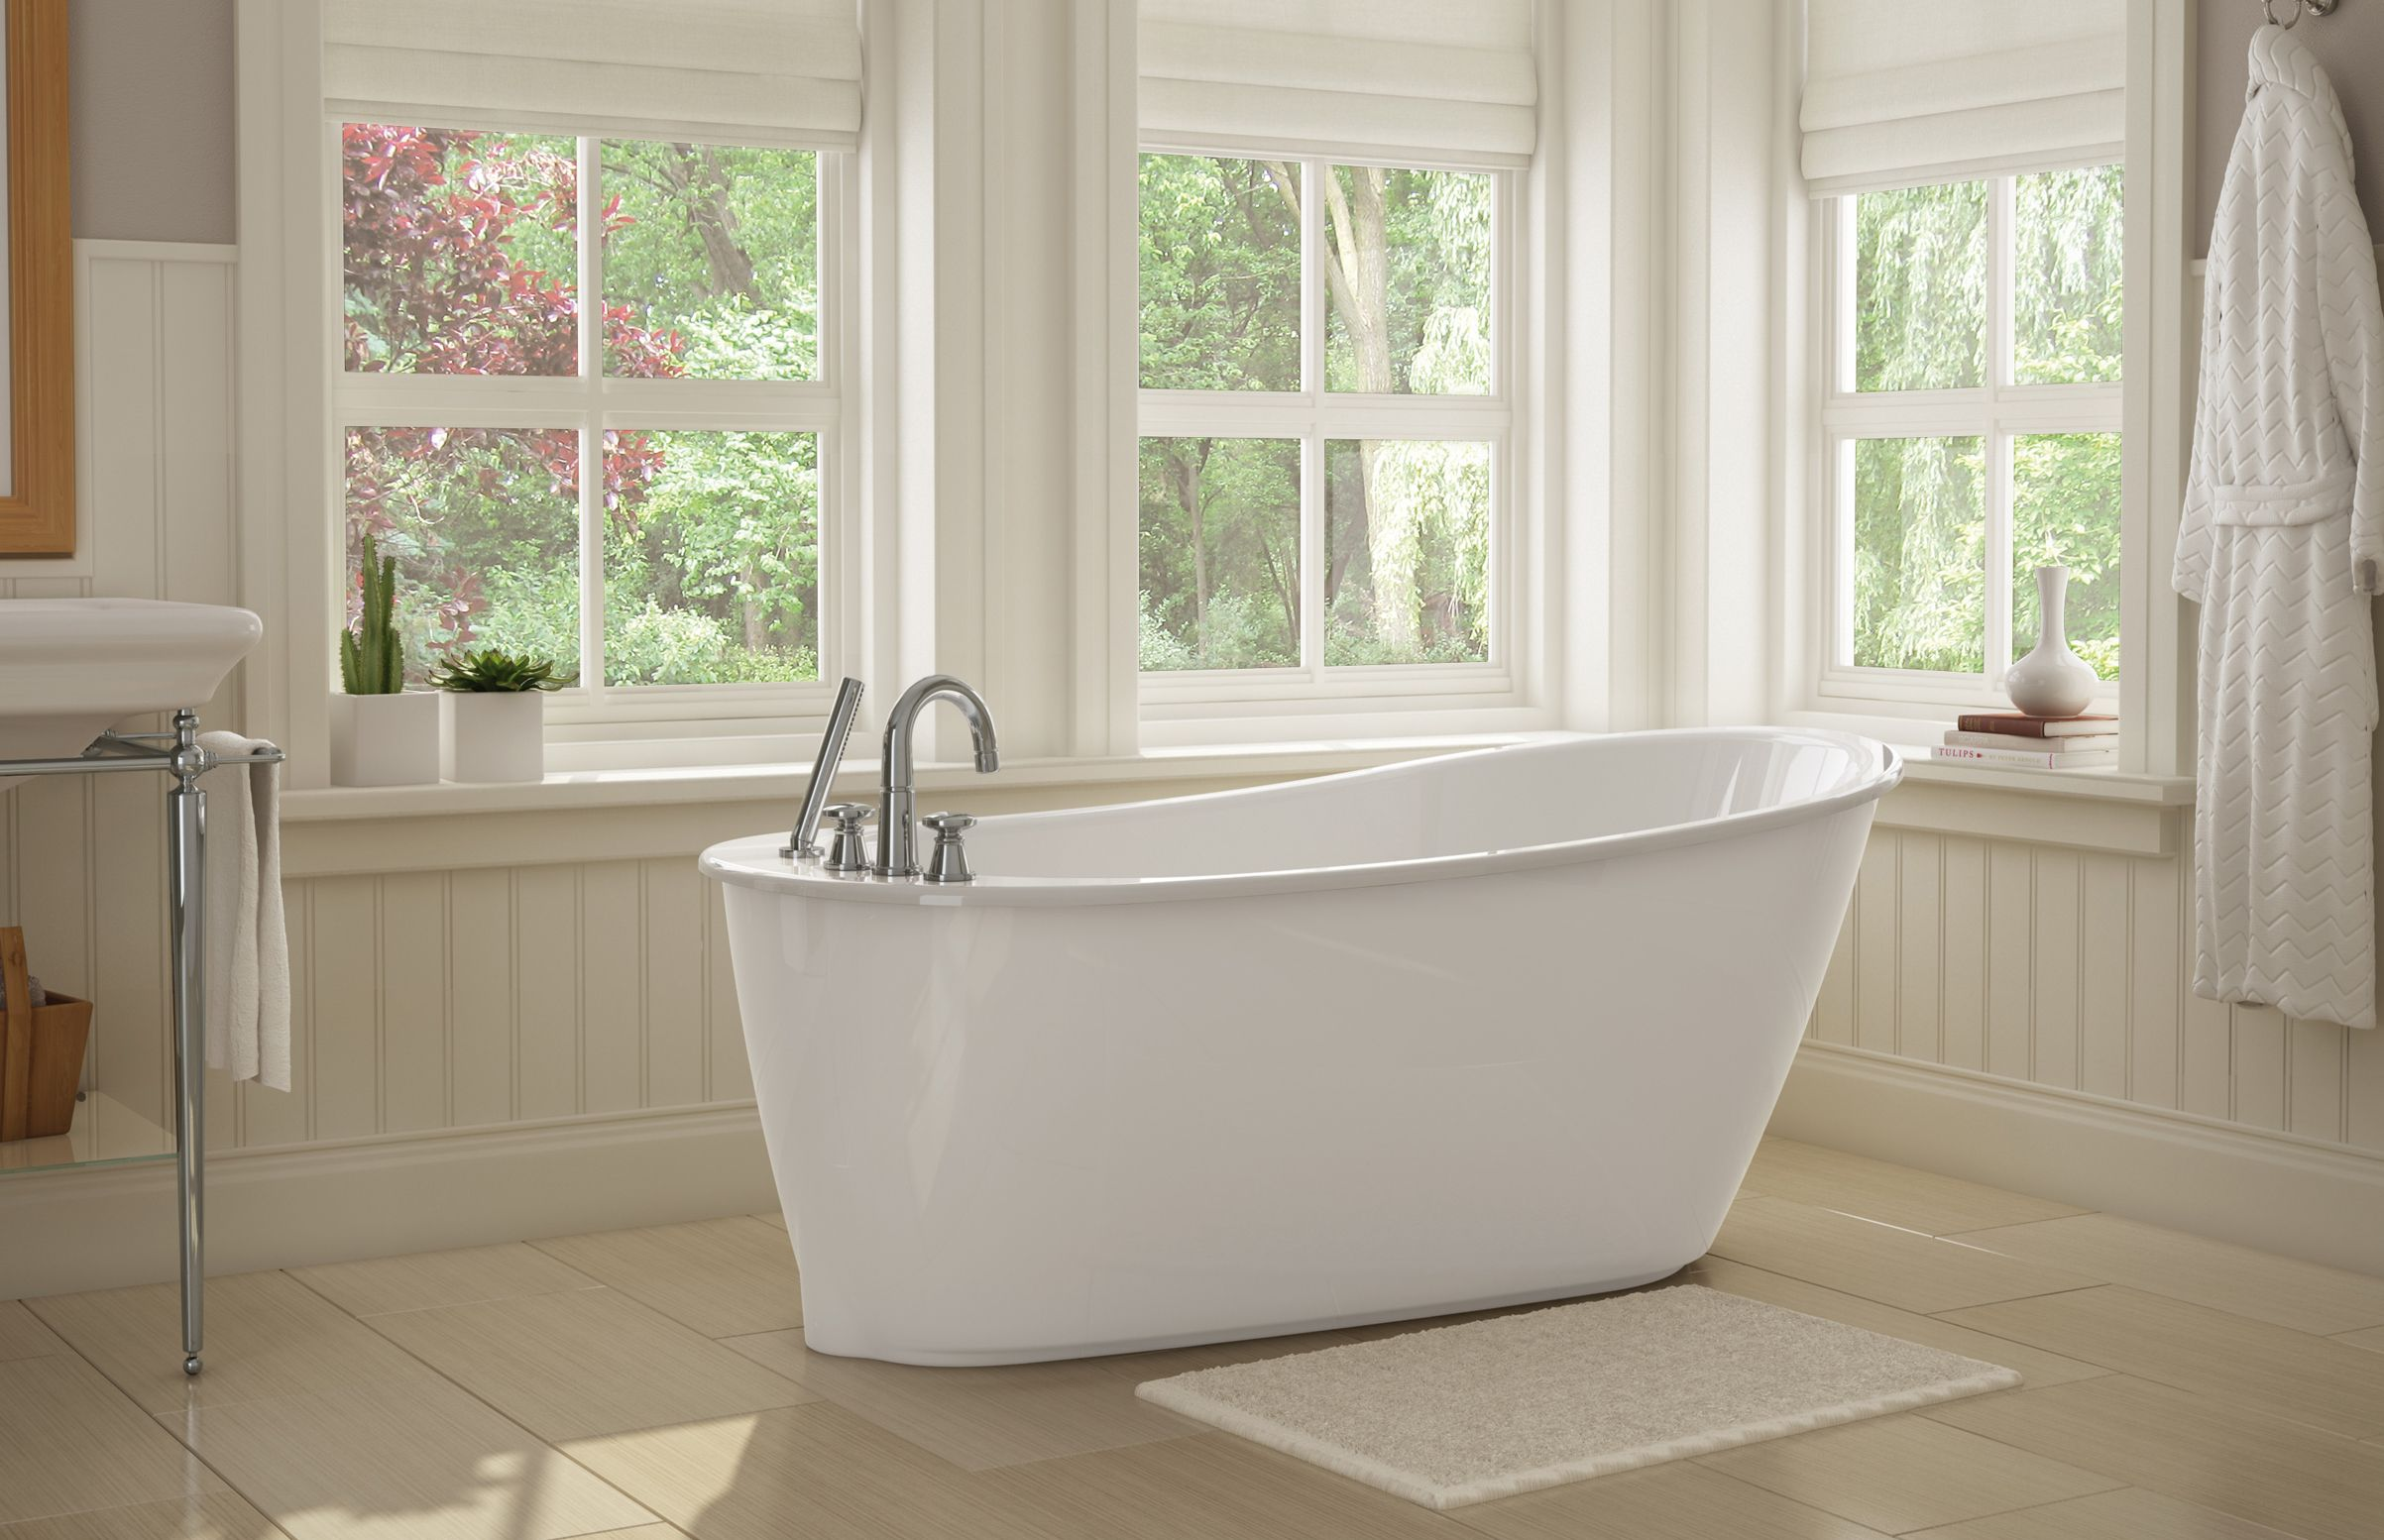 SAX Freestanding Bathtub - MAAX Bath Inc. | Bathroom Remodel ...